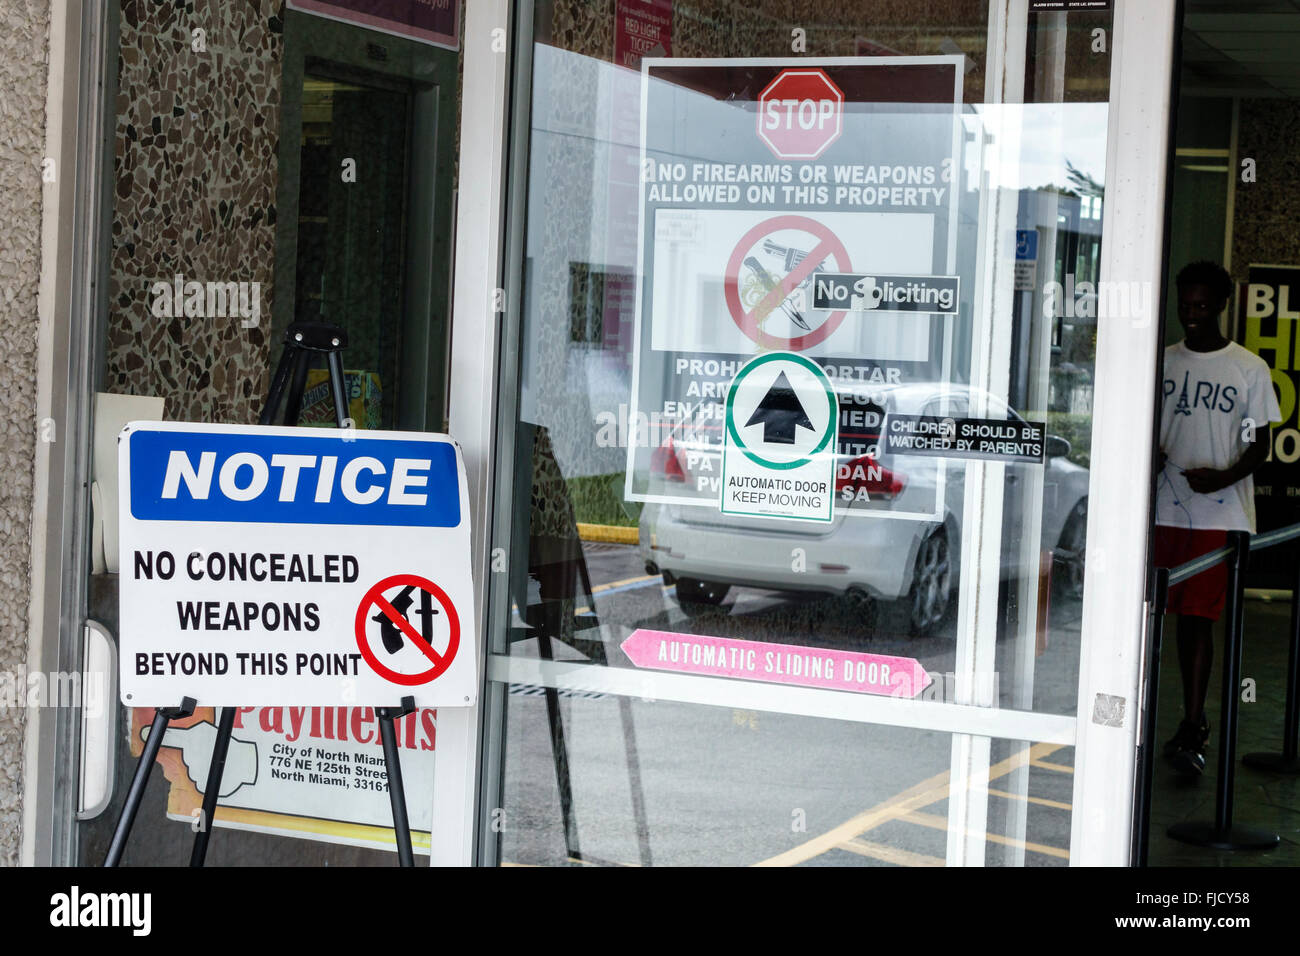 North Miami Florida city administrative offices notice no concealed weapons beyond this point firearms not allowed - Stock Image